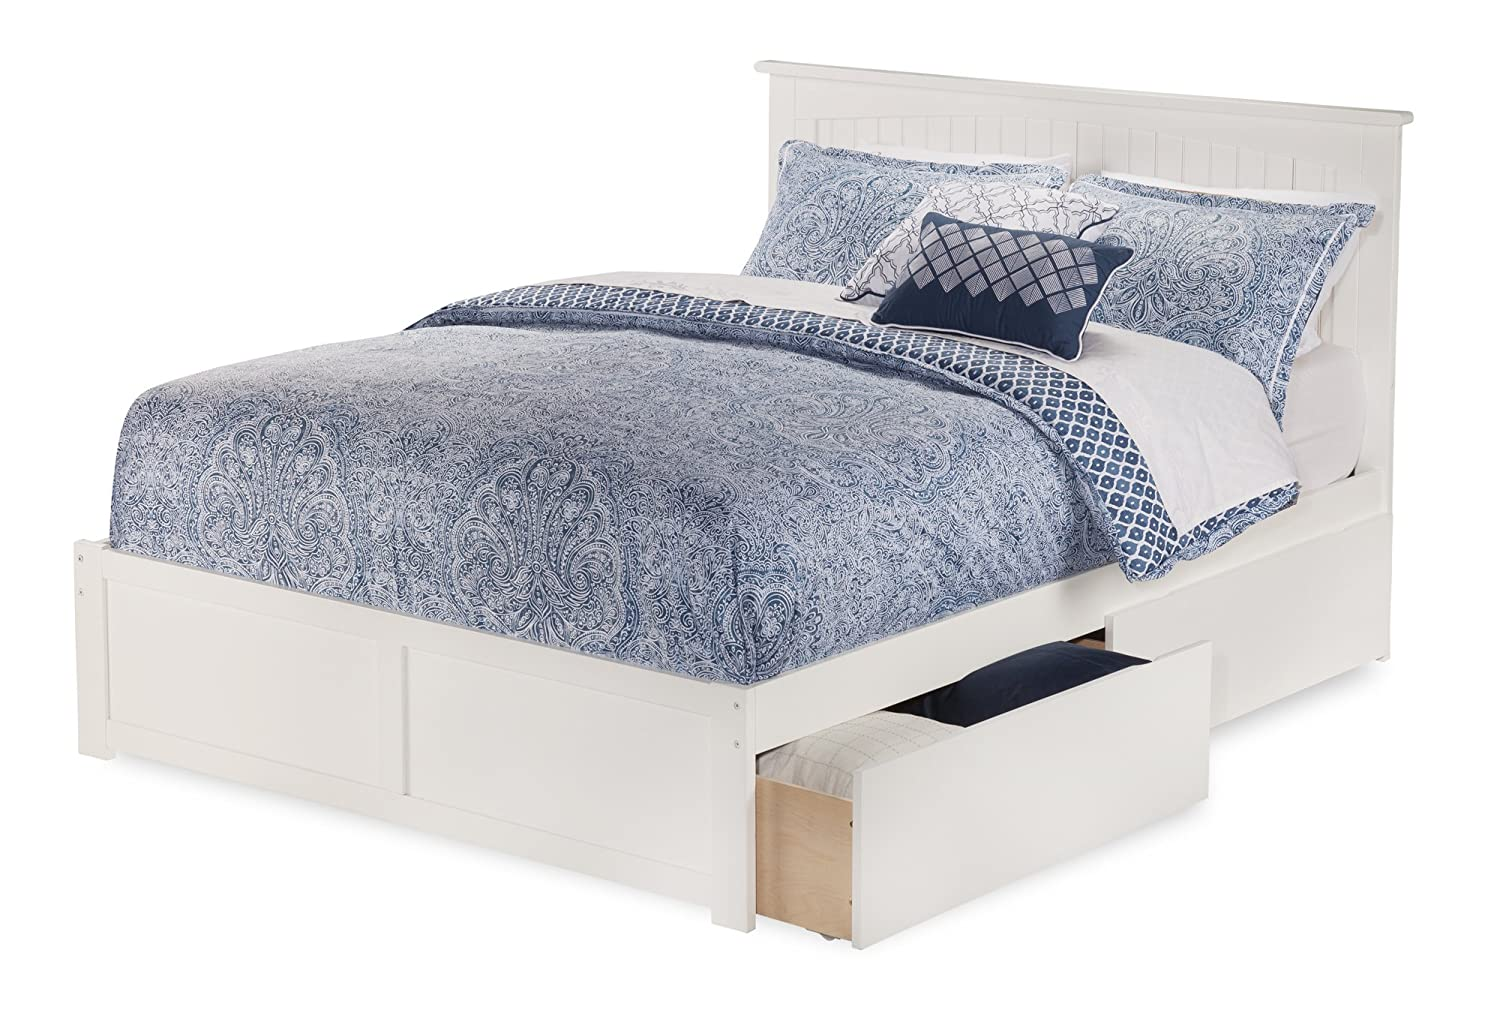 drawers queen detail cfm with vito hayneedle product platform bed storage